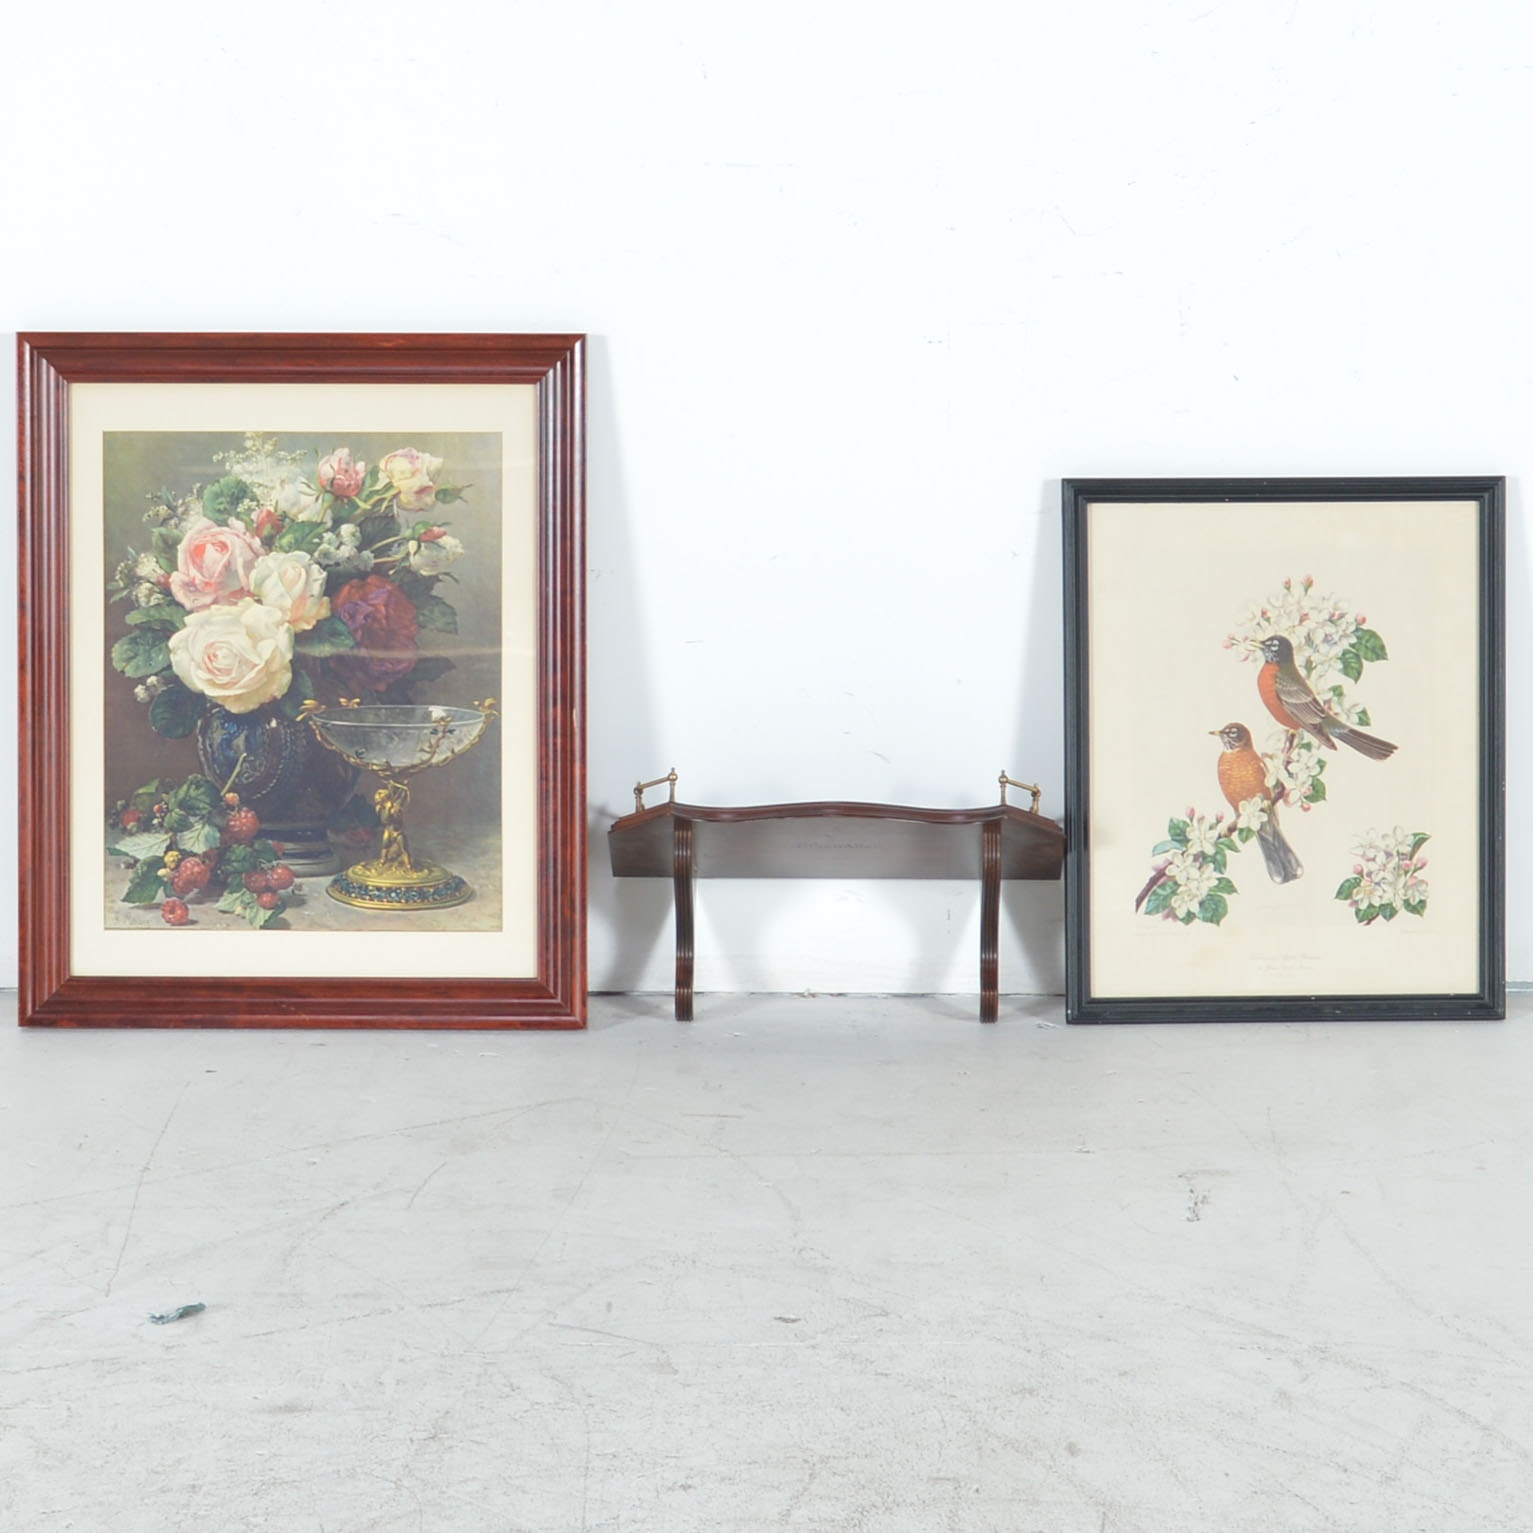 Ethan Allen What-Not Shelf and Two Framed Offset Lithographs